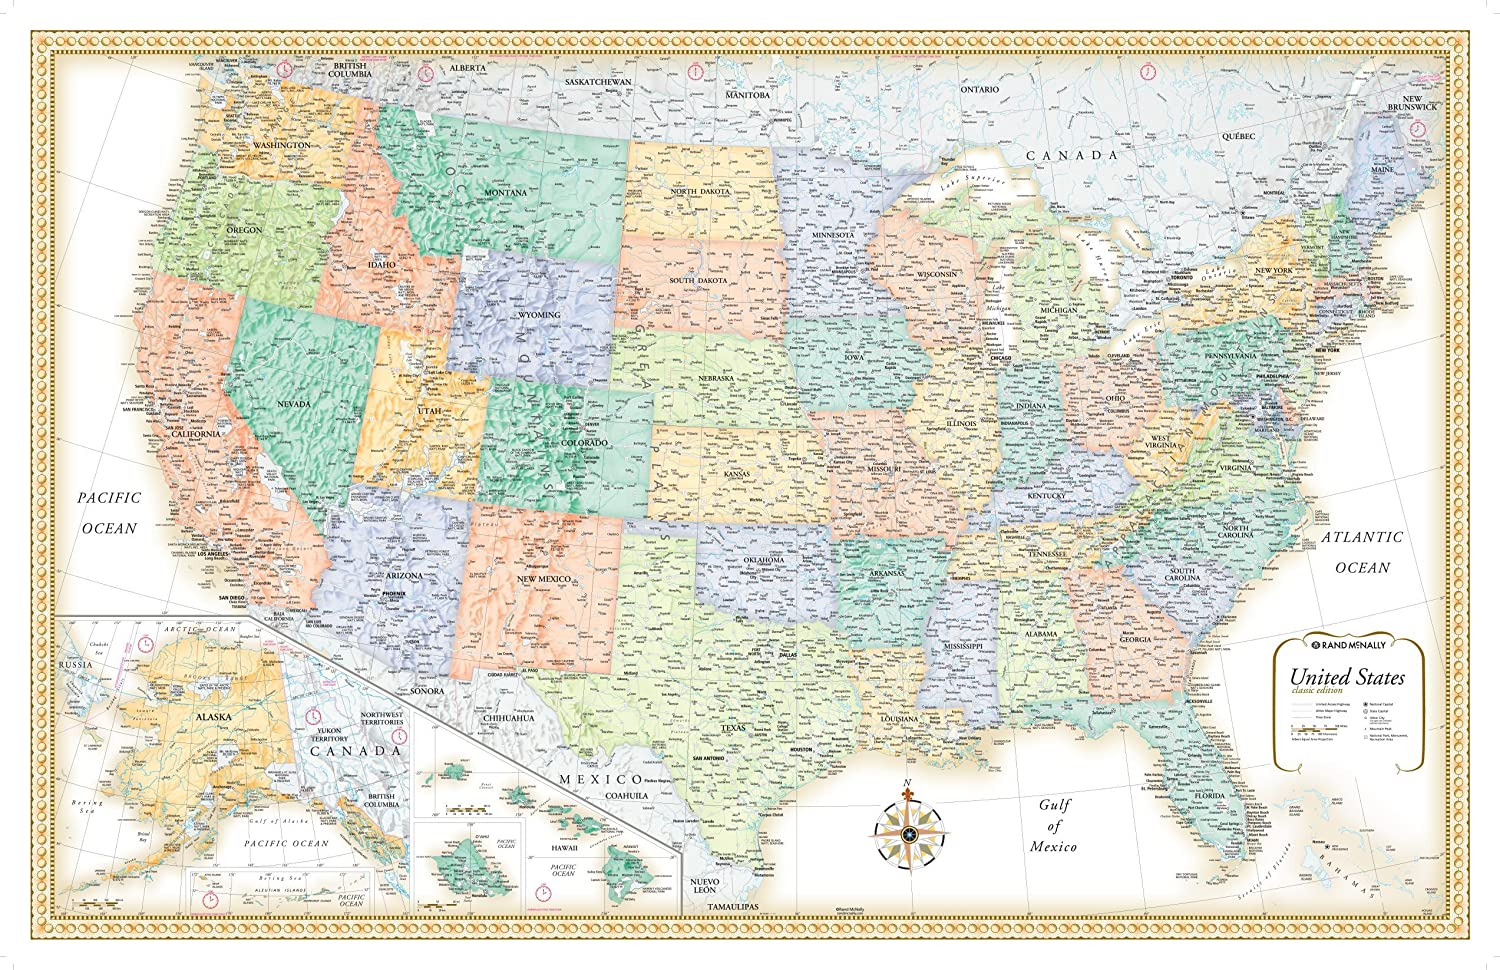 Amazoncom X Rand McNally Classic United States USA Wall Map - Large us wall map